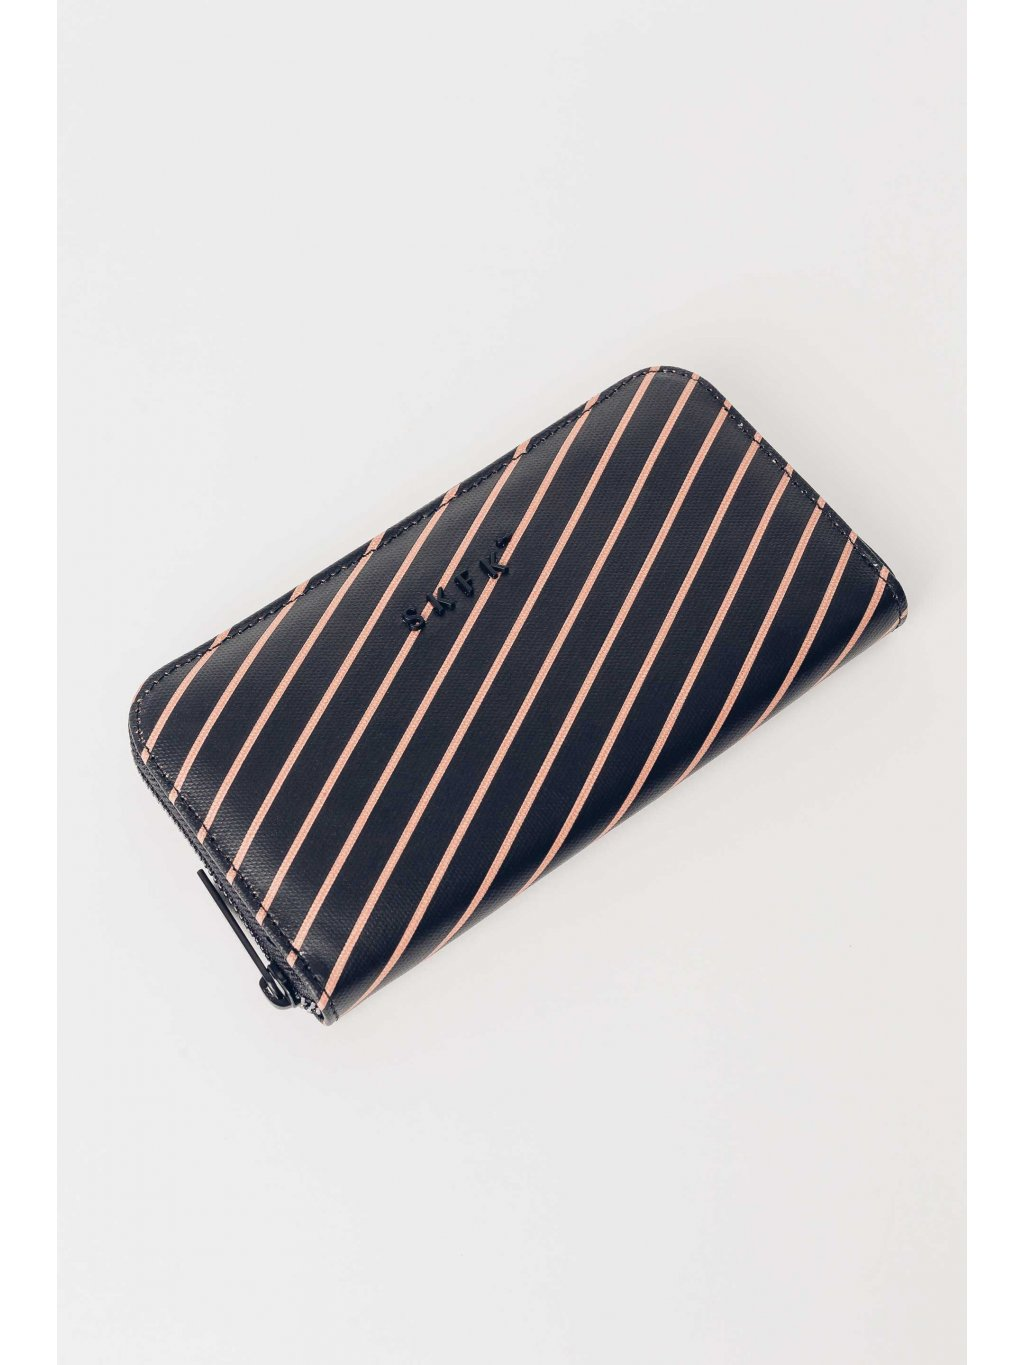 wallet recycled cotton ivi skfk wwa00497 p1 ofb